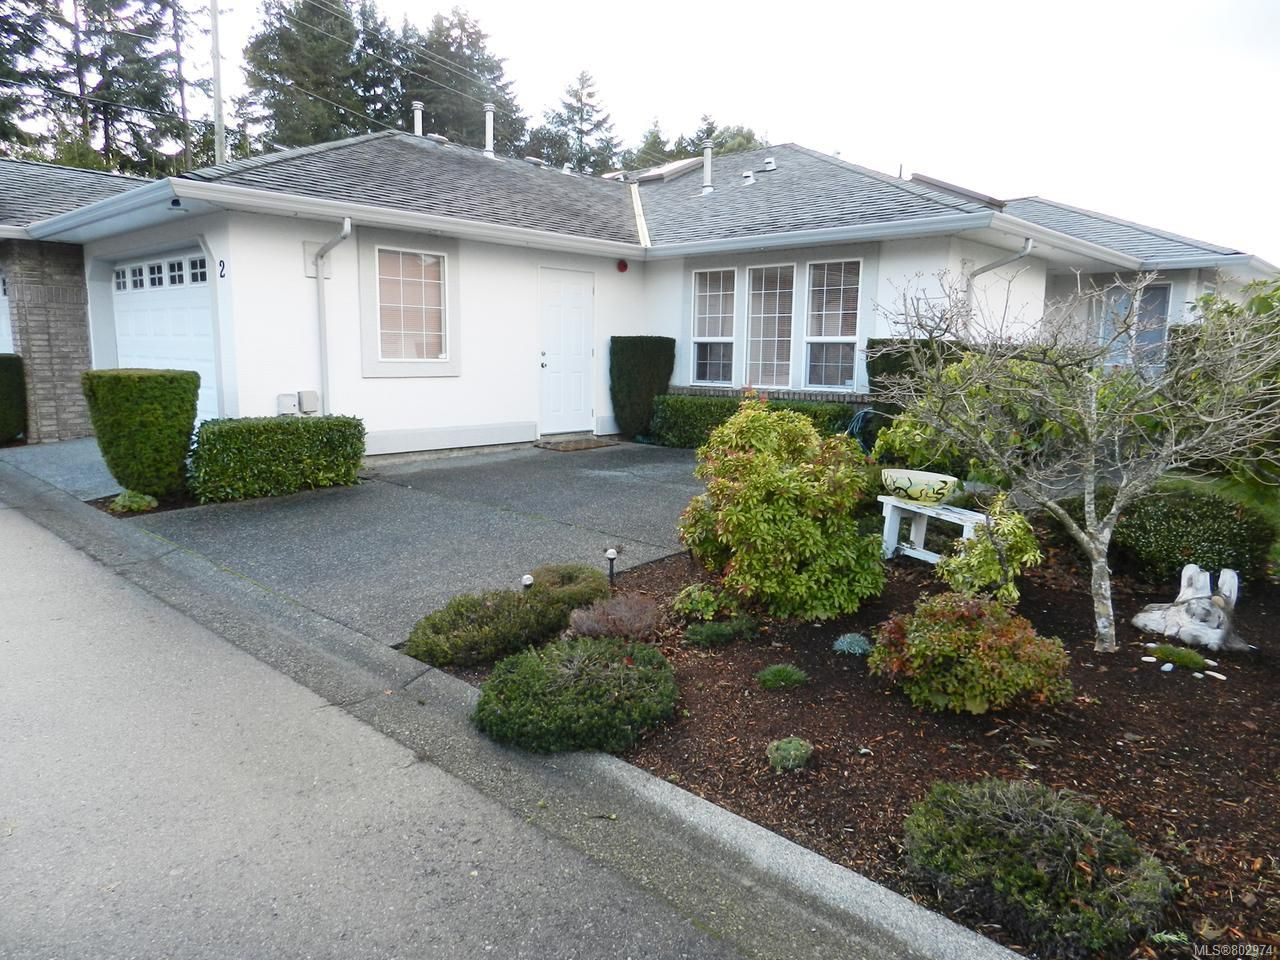 Main Photo: 2 6595 GROVELAND DRIVE in NANAIMO: Na North Nanaimo Row/Townhouse for sale (Nanaimo)  : MLS®# 802974